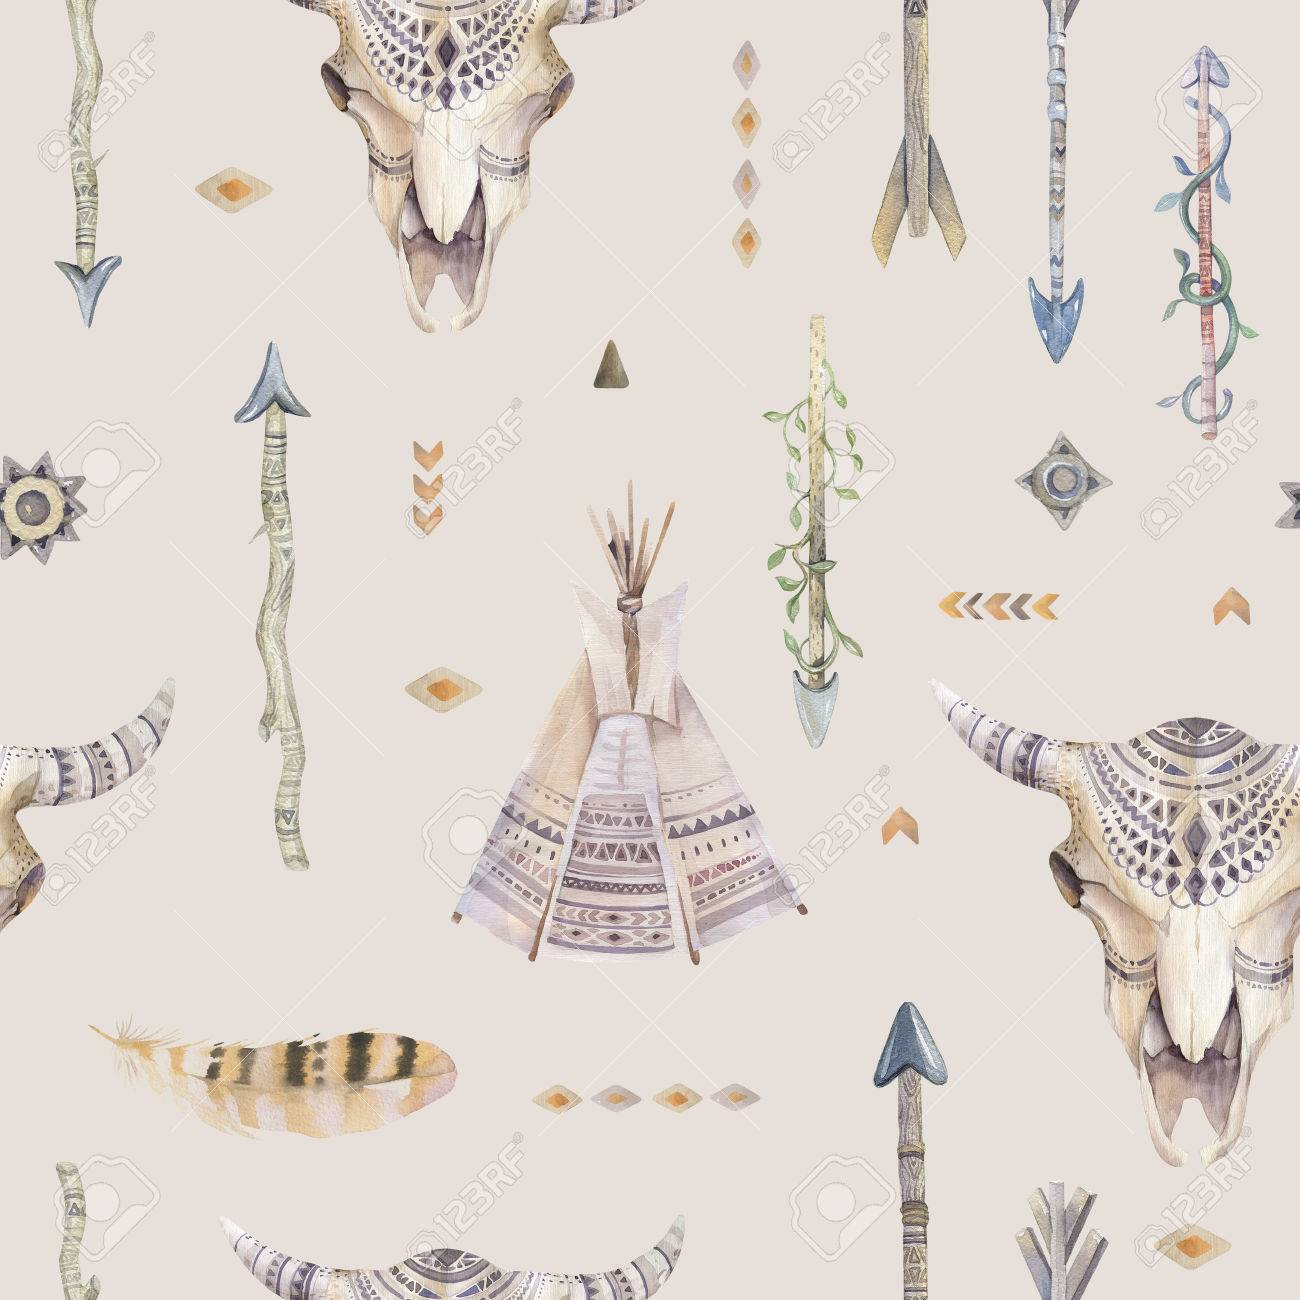 Watercolor Boho Seamless Pattern With Teepee Arrows Feathers 1300x1300